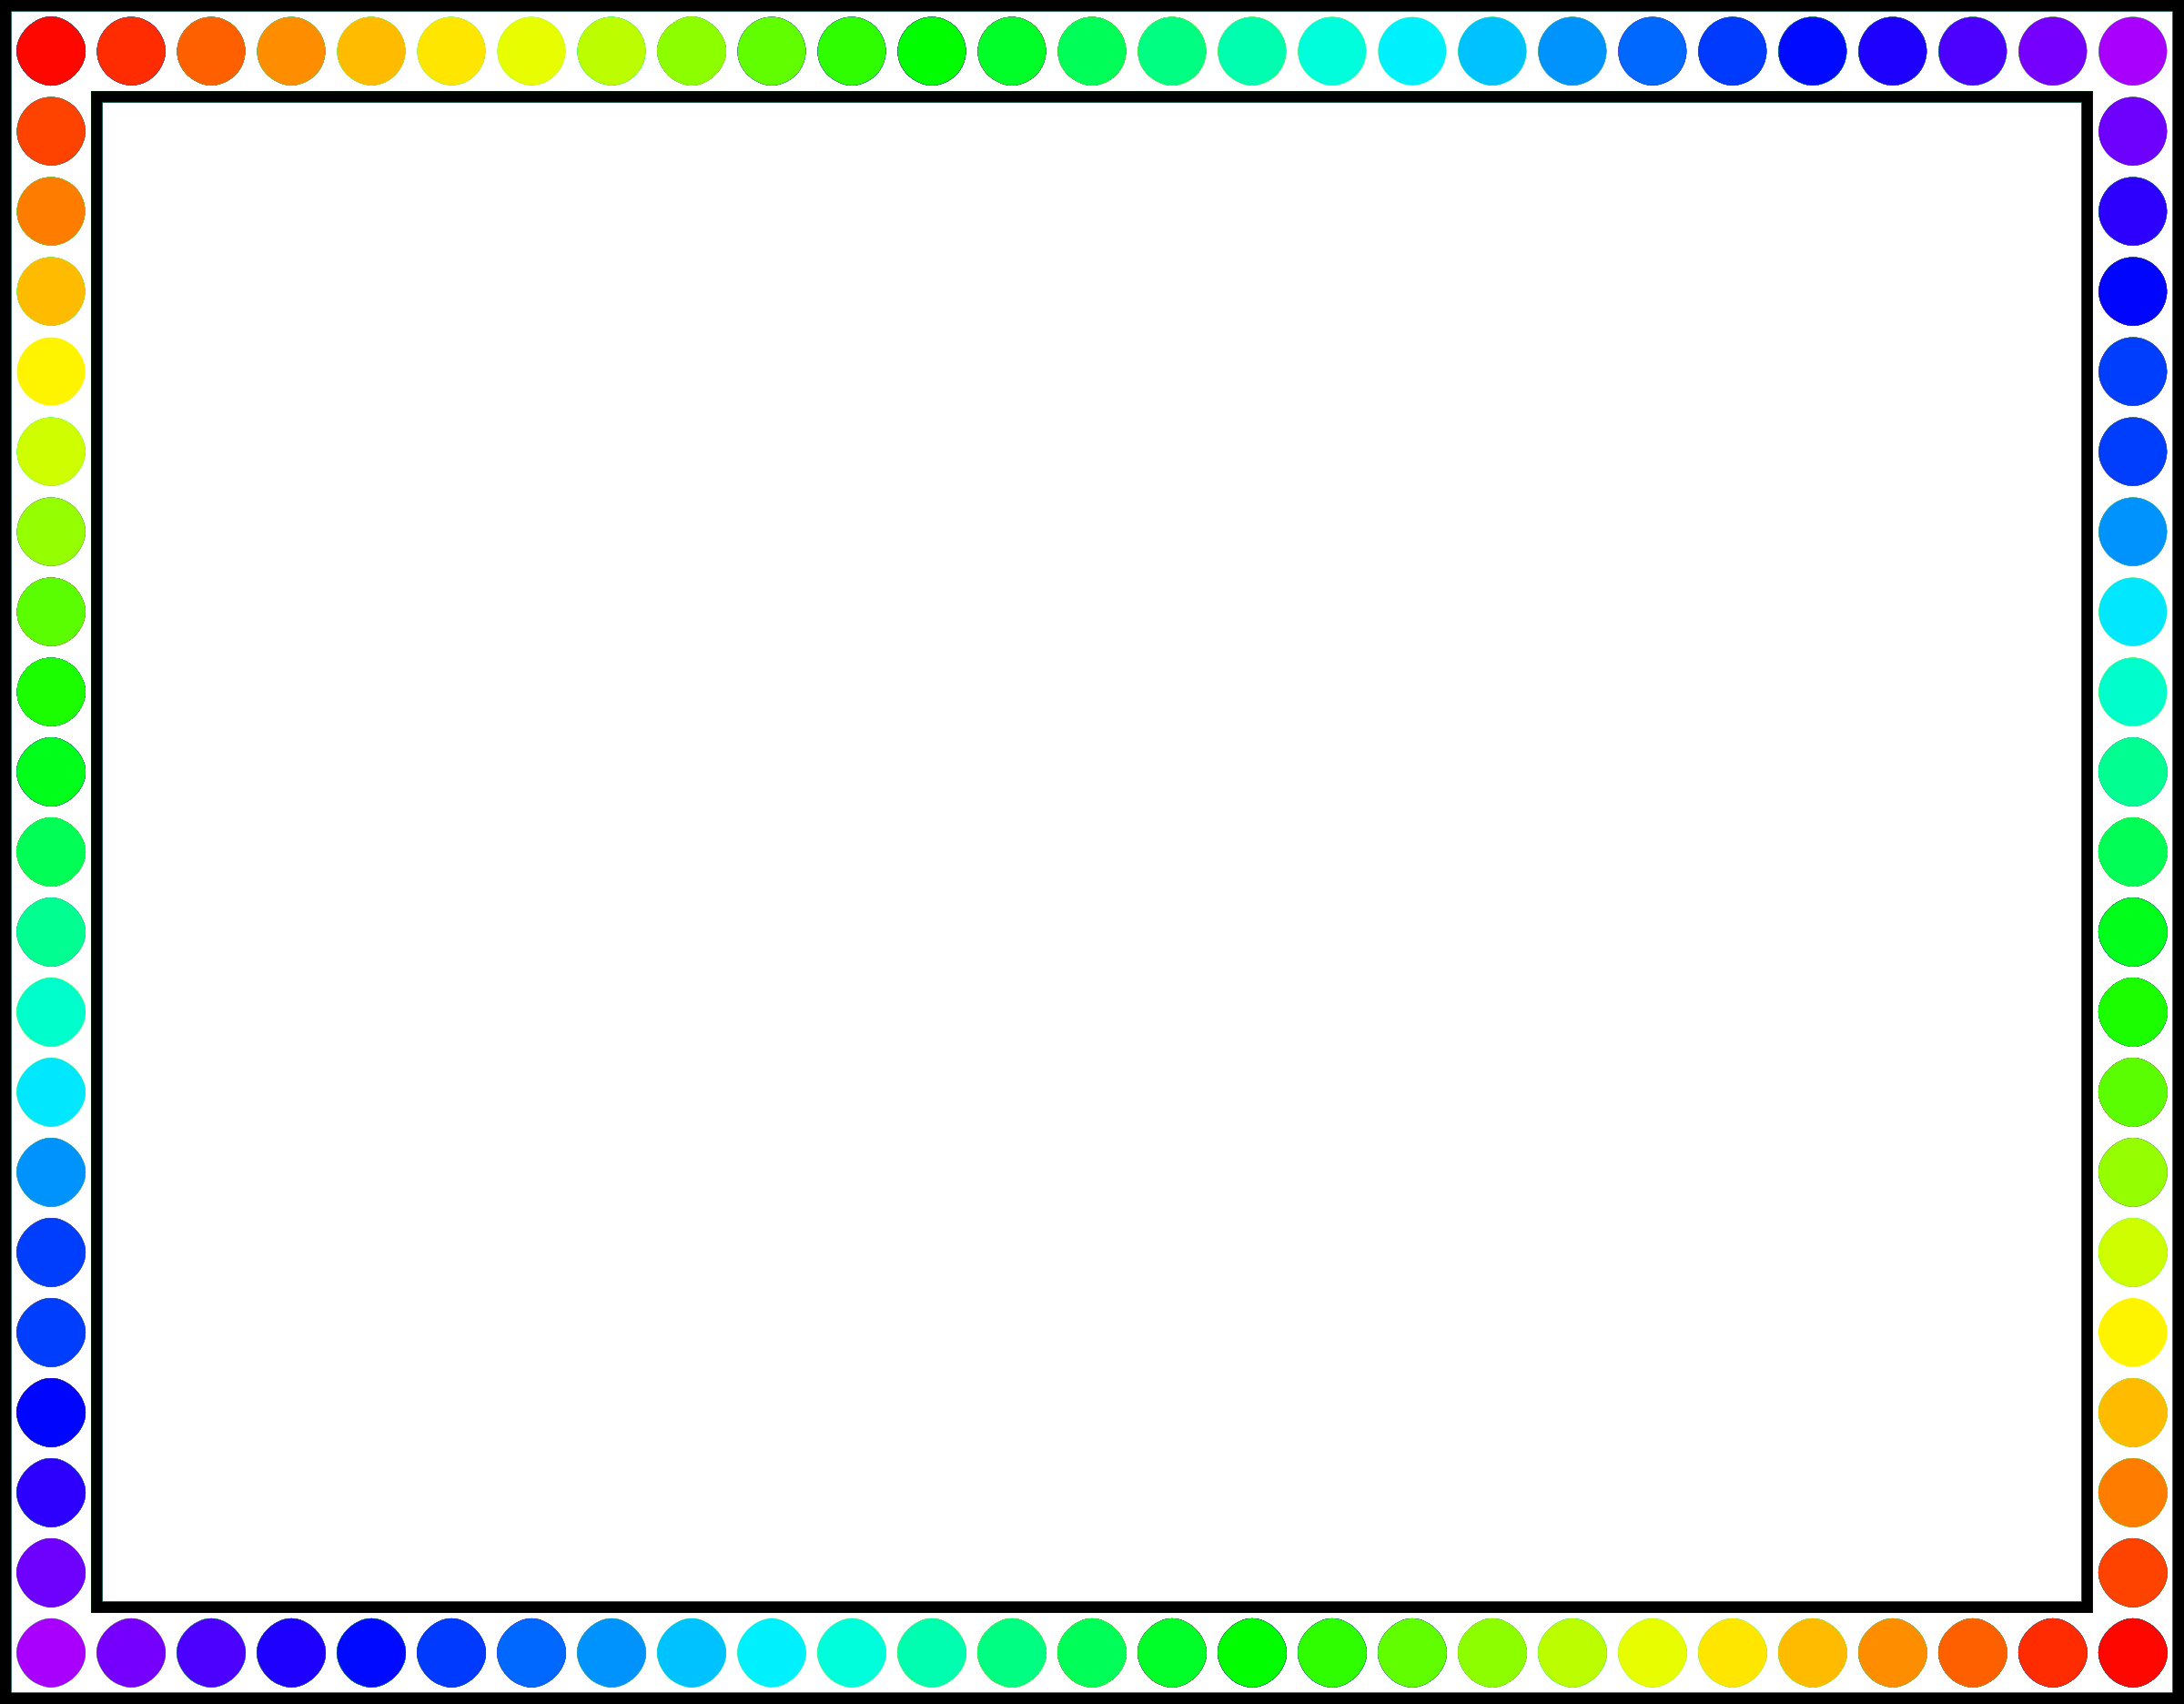 Free icons and backgrounds. Border frame png jpg transparent